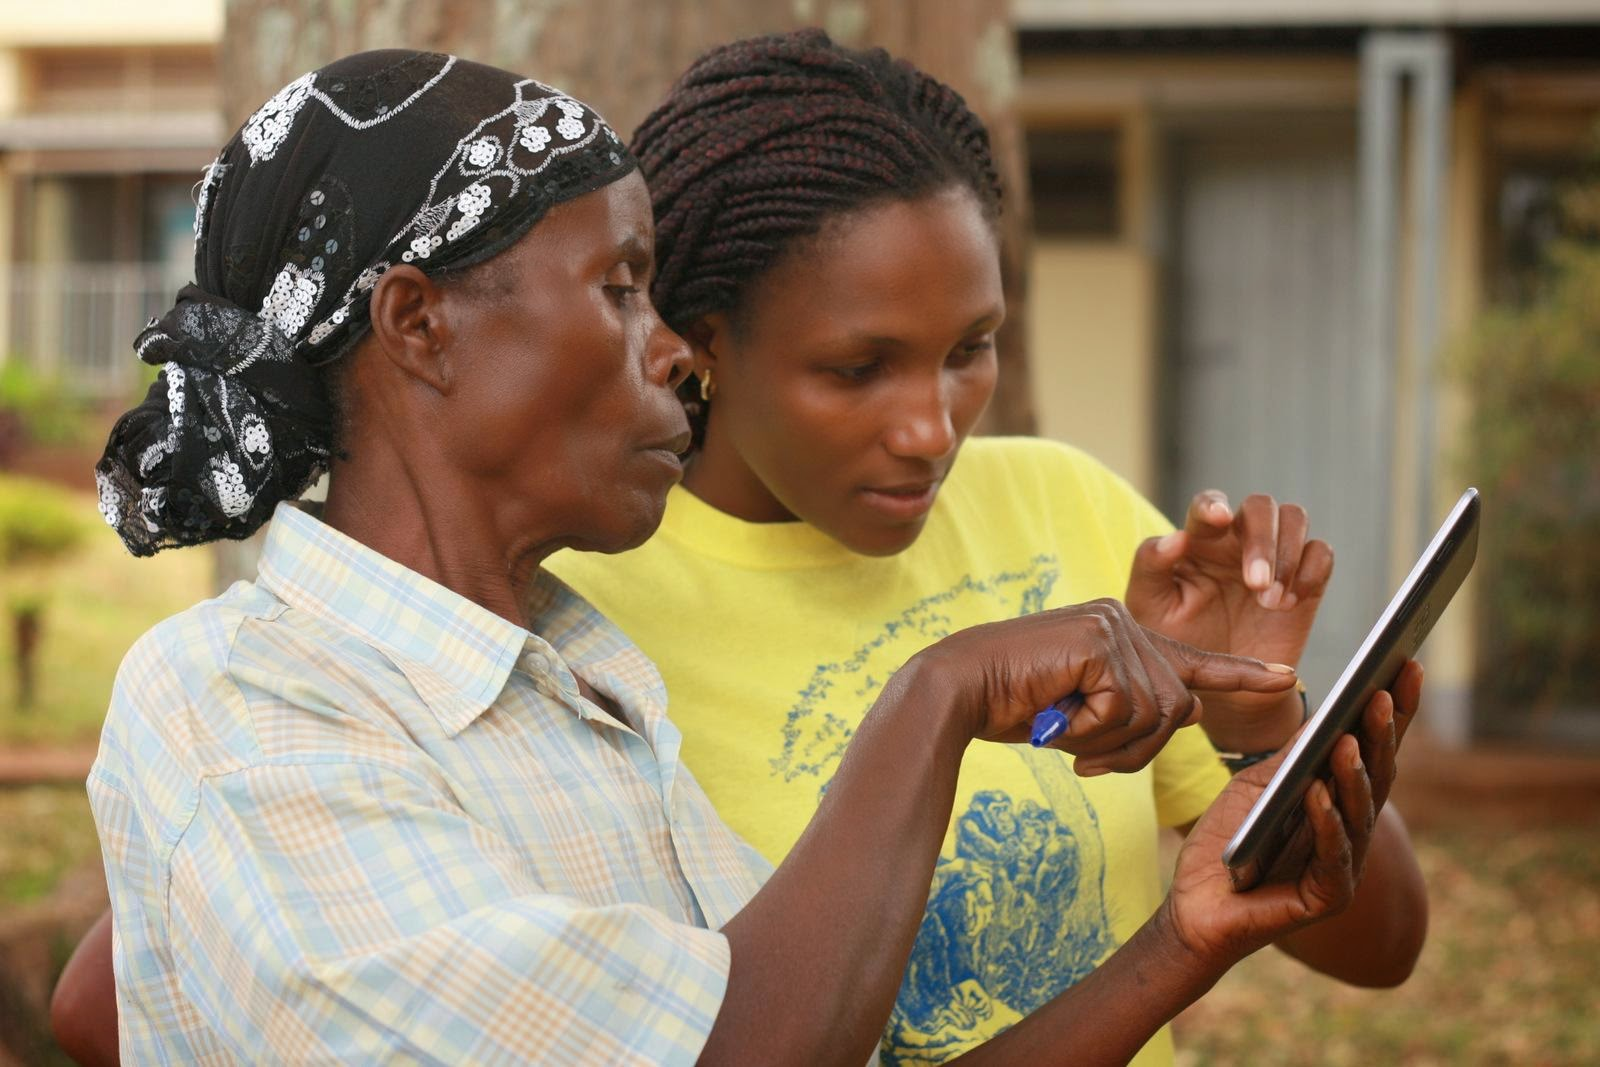 Getting mobile news content right for a roaming audience